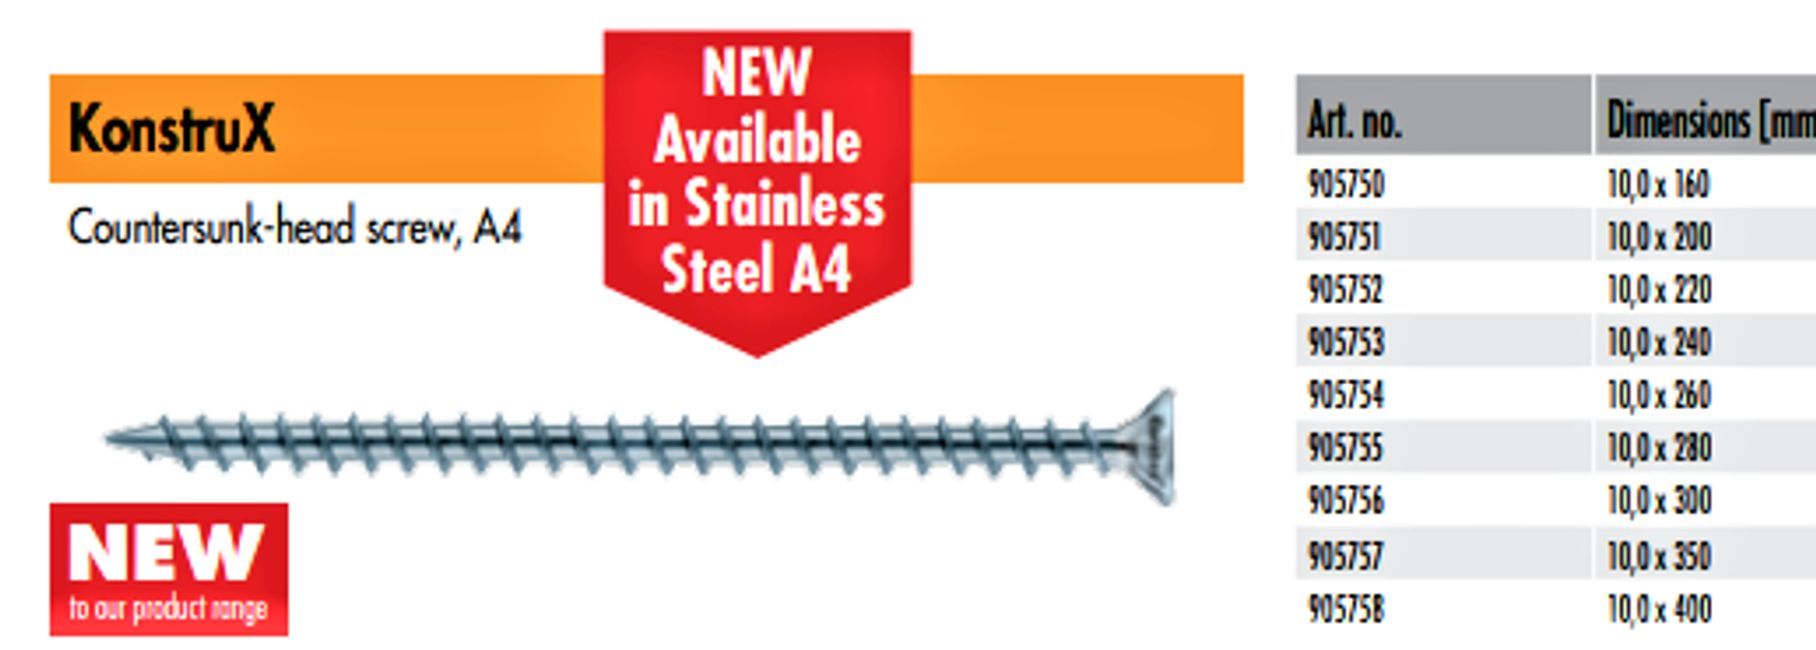 KonstruX Stainless Steel Full Thread Structural Wood Screw